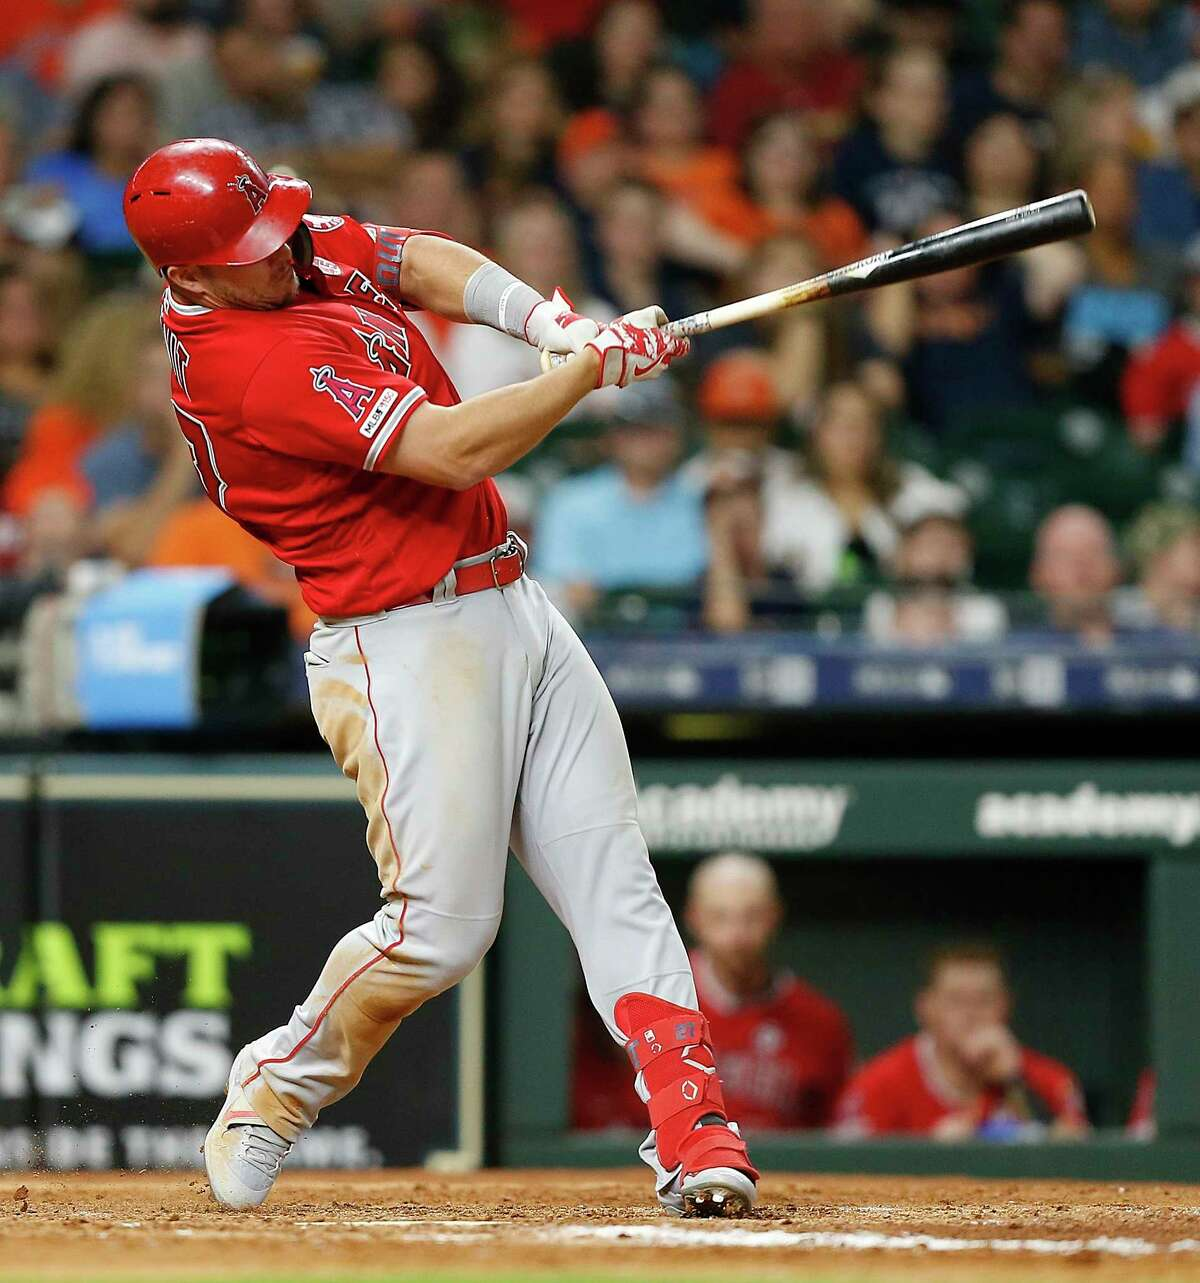 HOUSTON, TEXAS - JULY 05: Mike Trout #27 of the Los Angeles Angels of Anaheim hits a home run in the eighth inning against the Houston Astros at Minute Maid Park on July 05, 2019 in Houston, Texas. (Photo by Bob Levey/Getty Images)